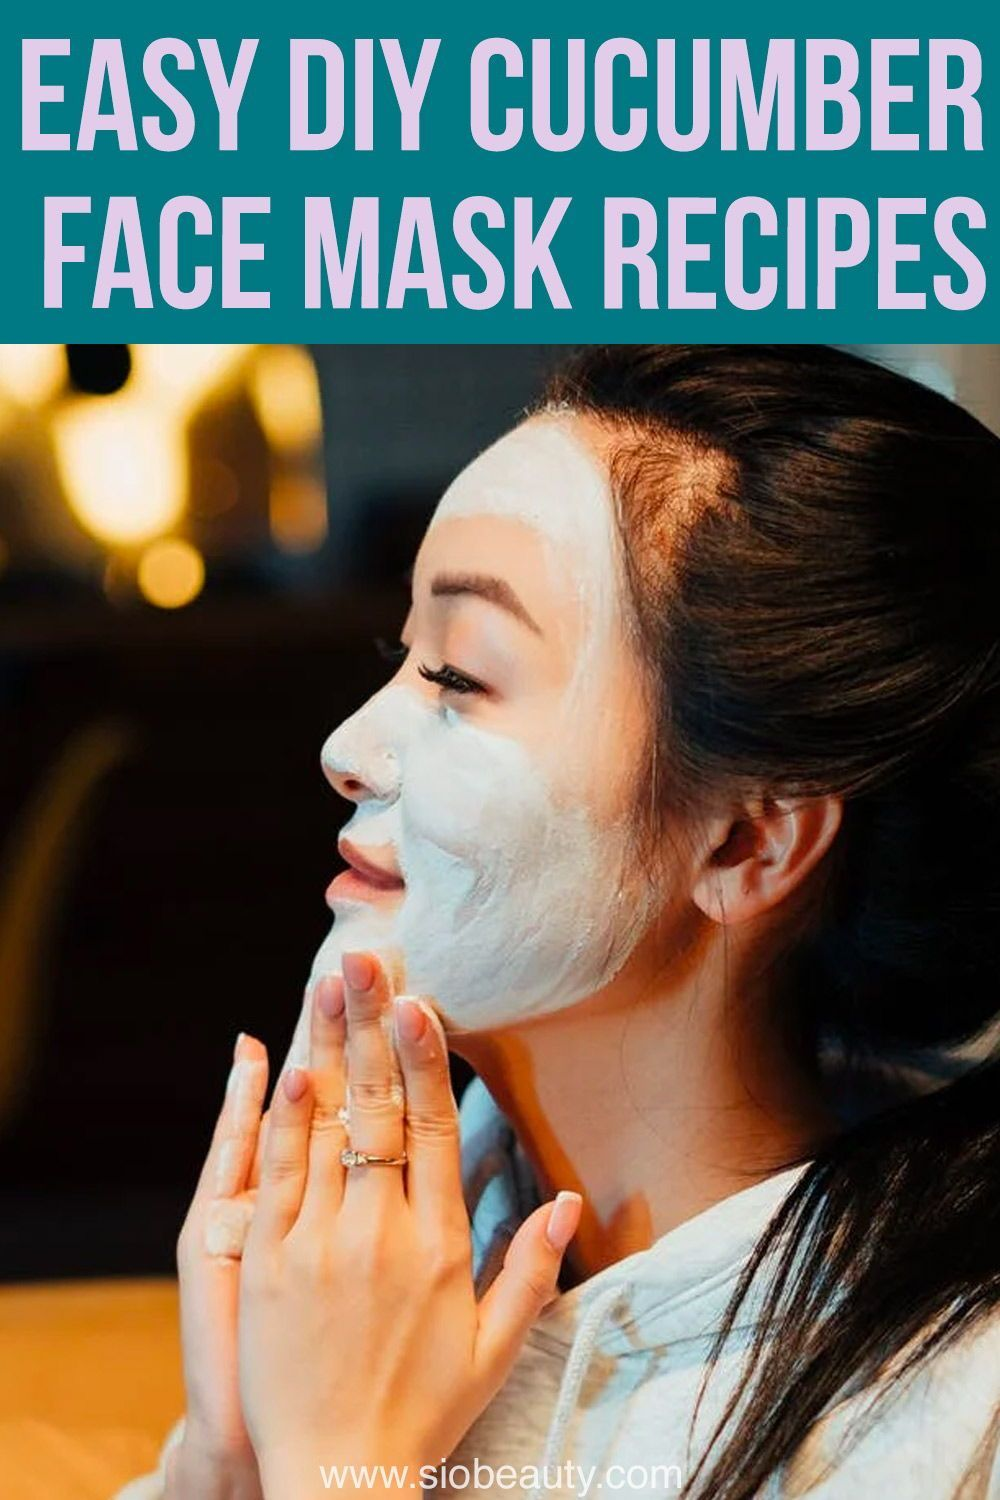 Photo of How To Make Your Own Cucumber Face Mask: The 7 Best Recipes